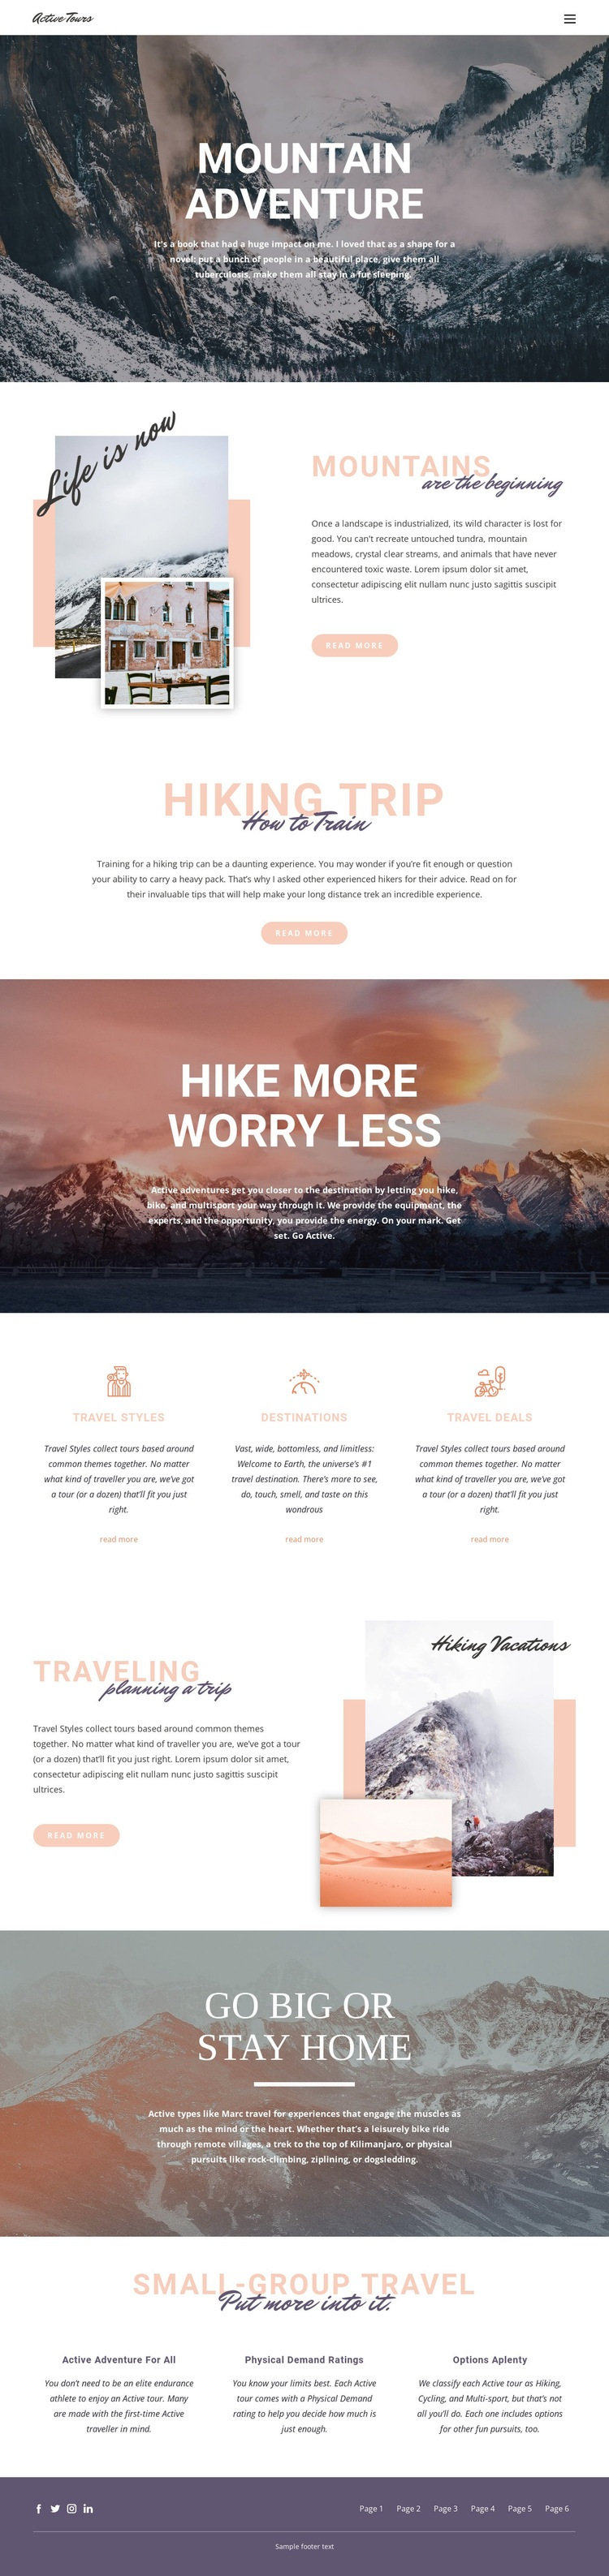 Guided backpacking trips Html Code Example